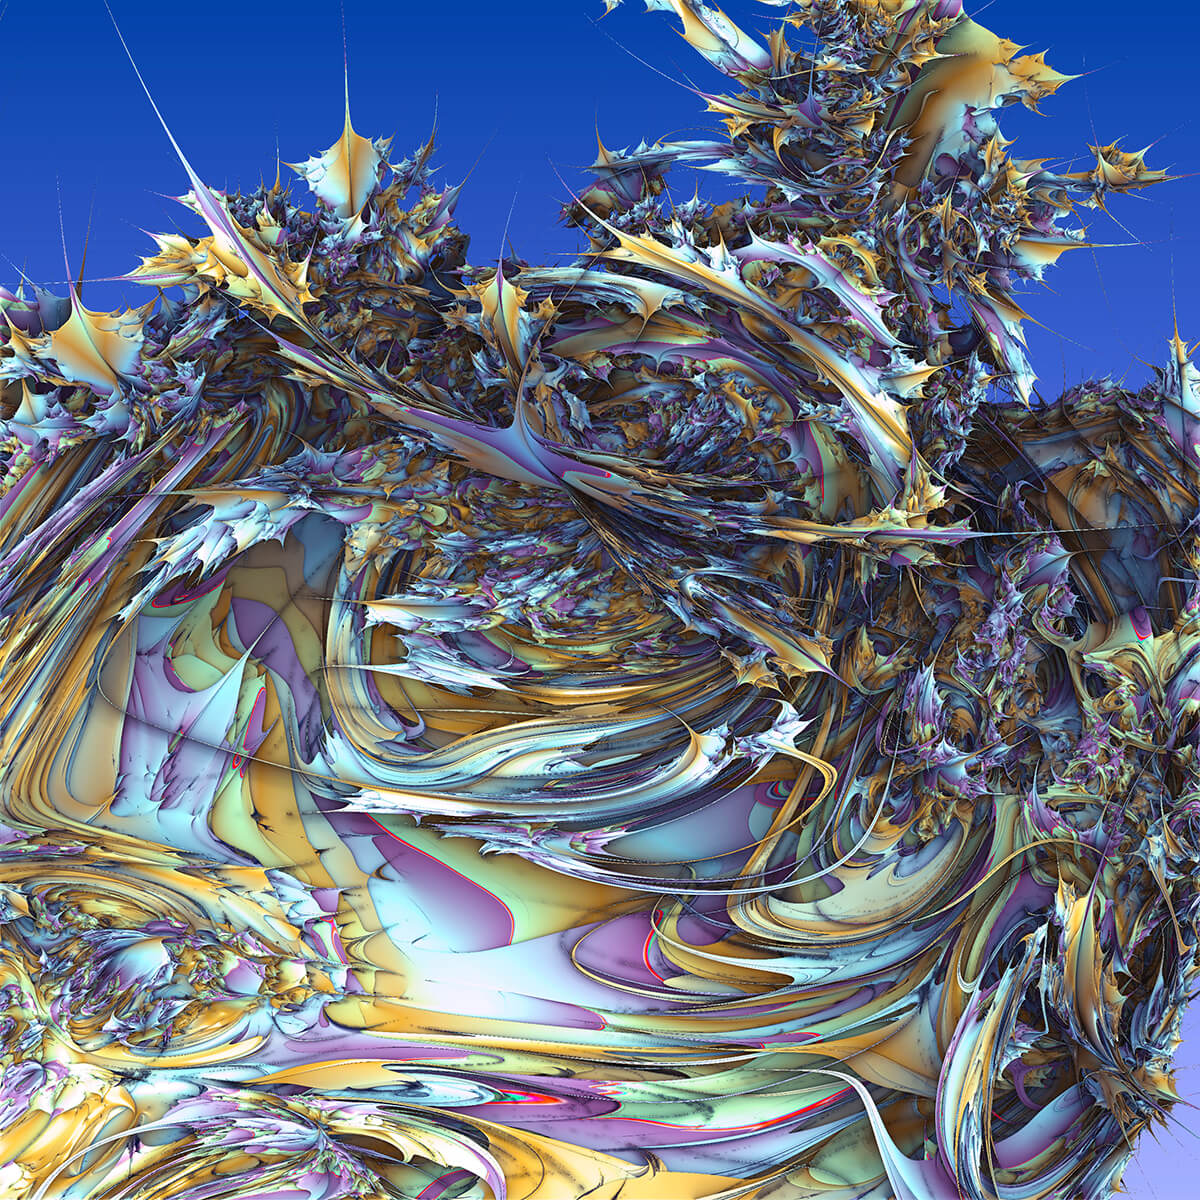 3D render of fractal abstract shape